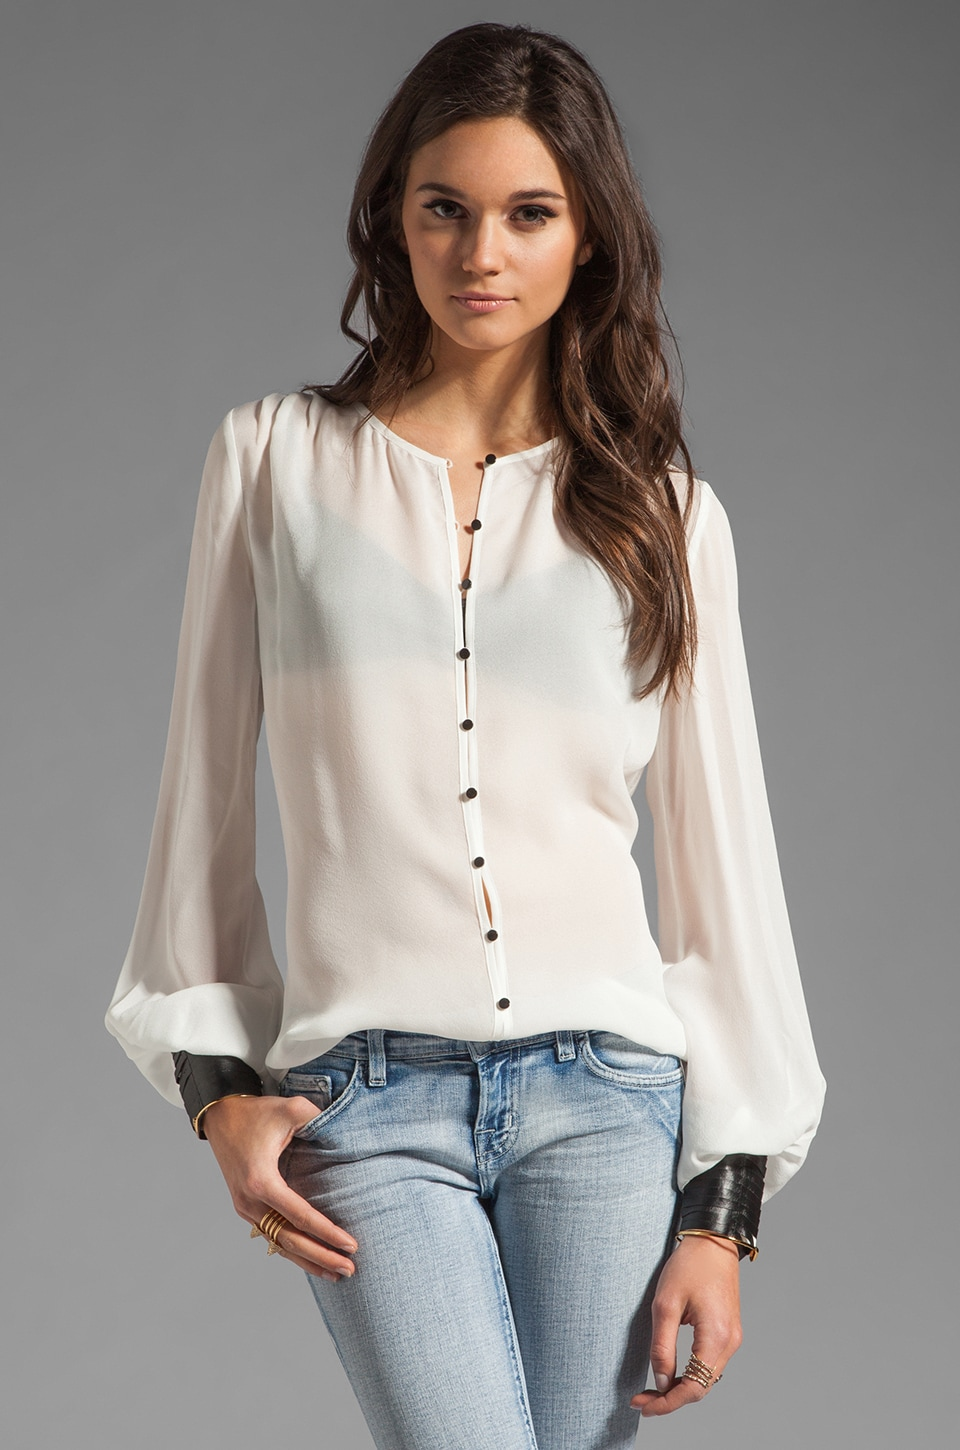 Elizabeth and James Mikayla Blouse in Ivory/Black